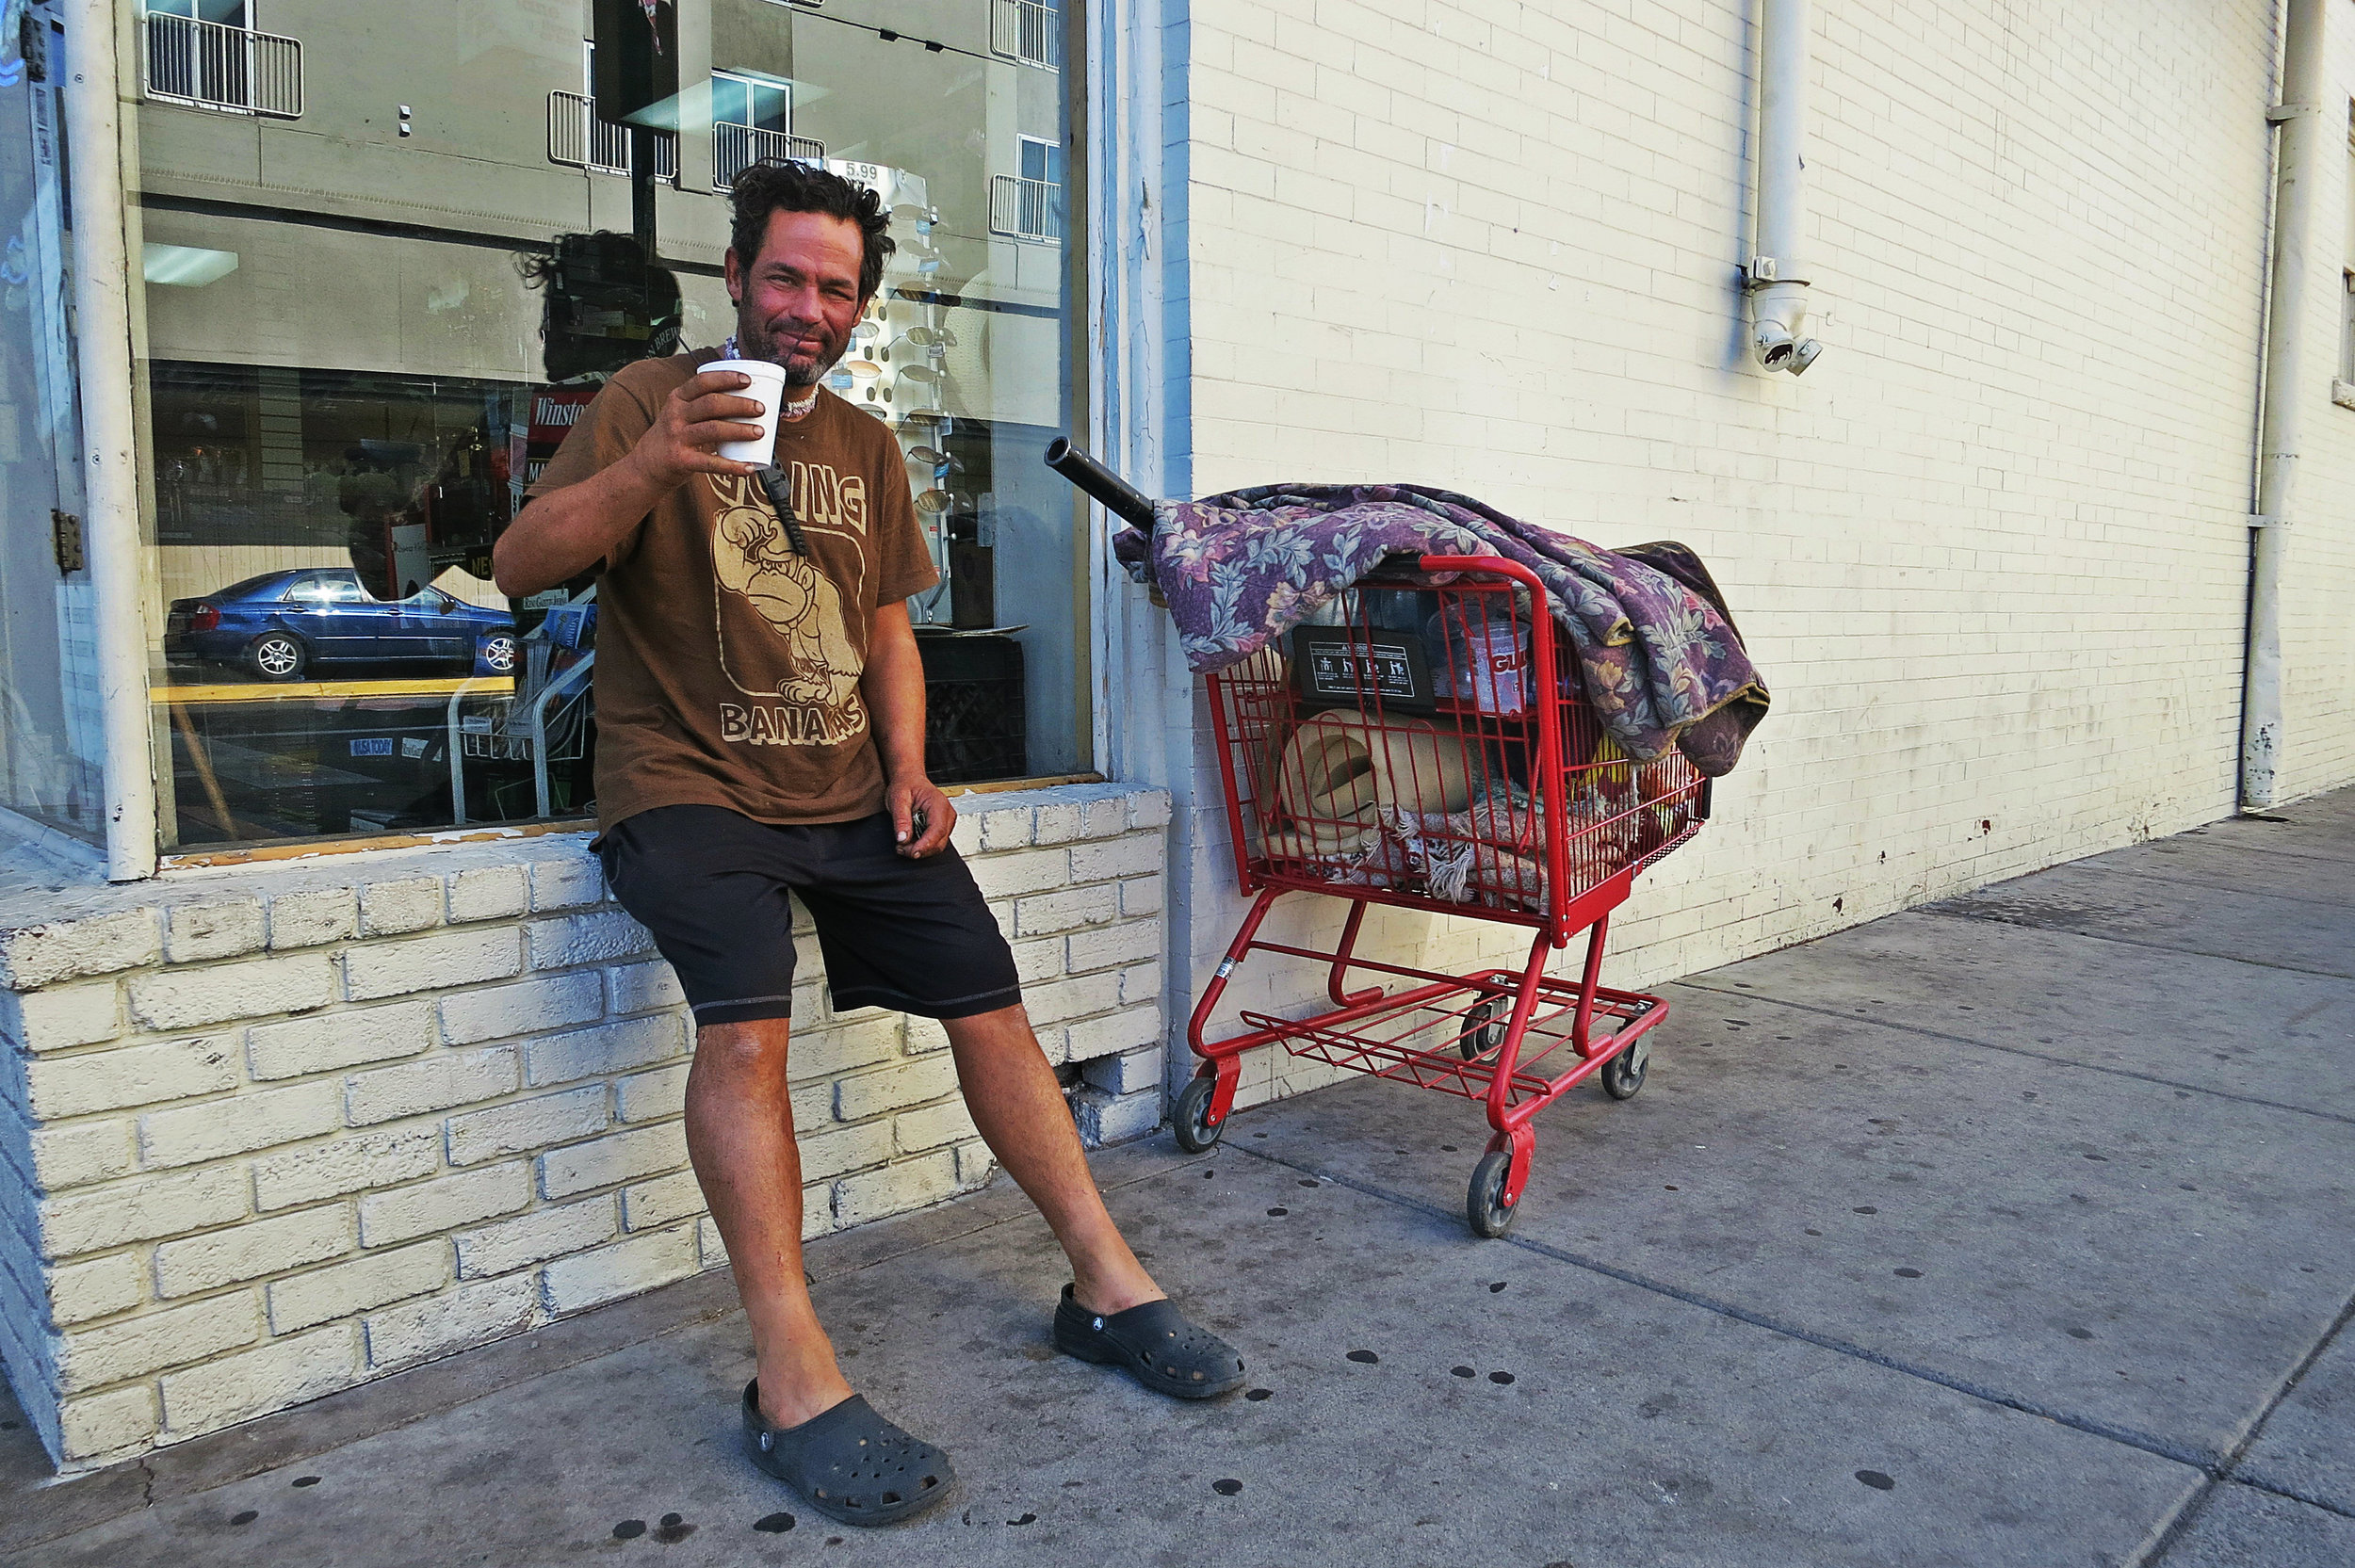 """""""I'm just holding on to my life,"""" Christian says of recently being robbed of many of his possessions after getting some money from a passerby to get some coffee."""